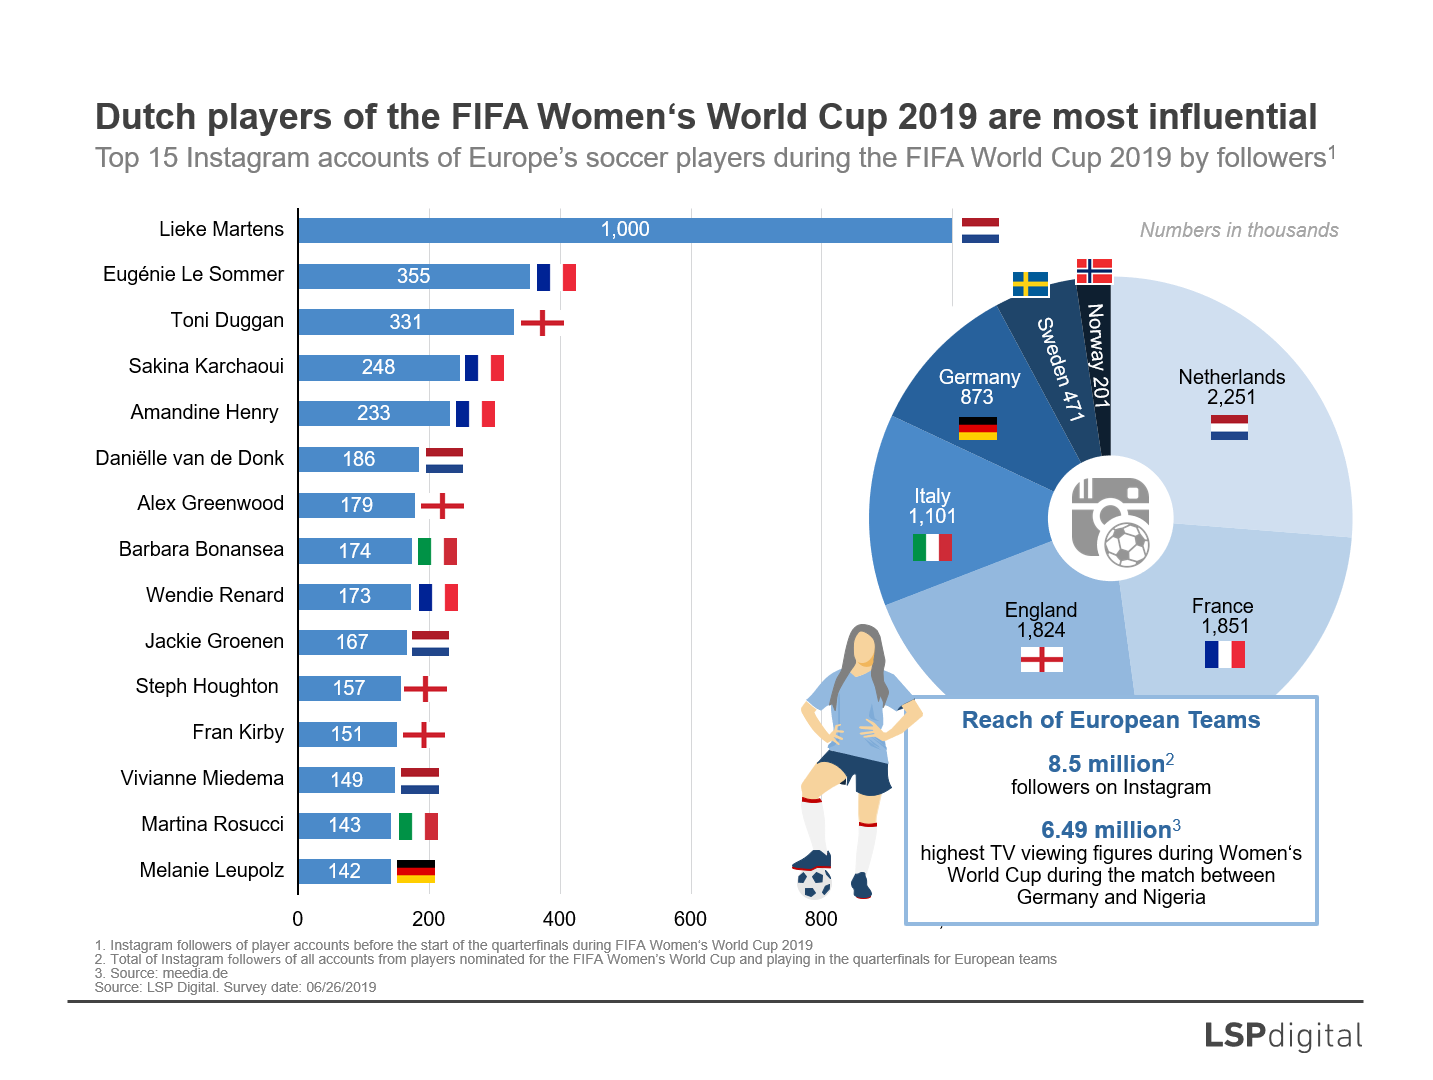 most influential FIFA Woment's player